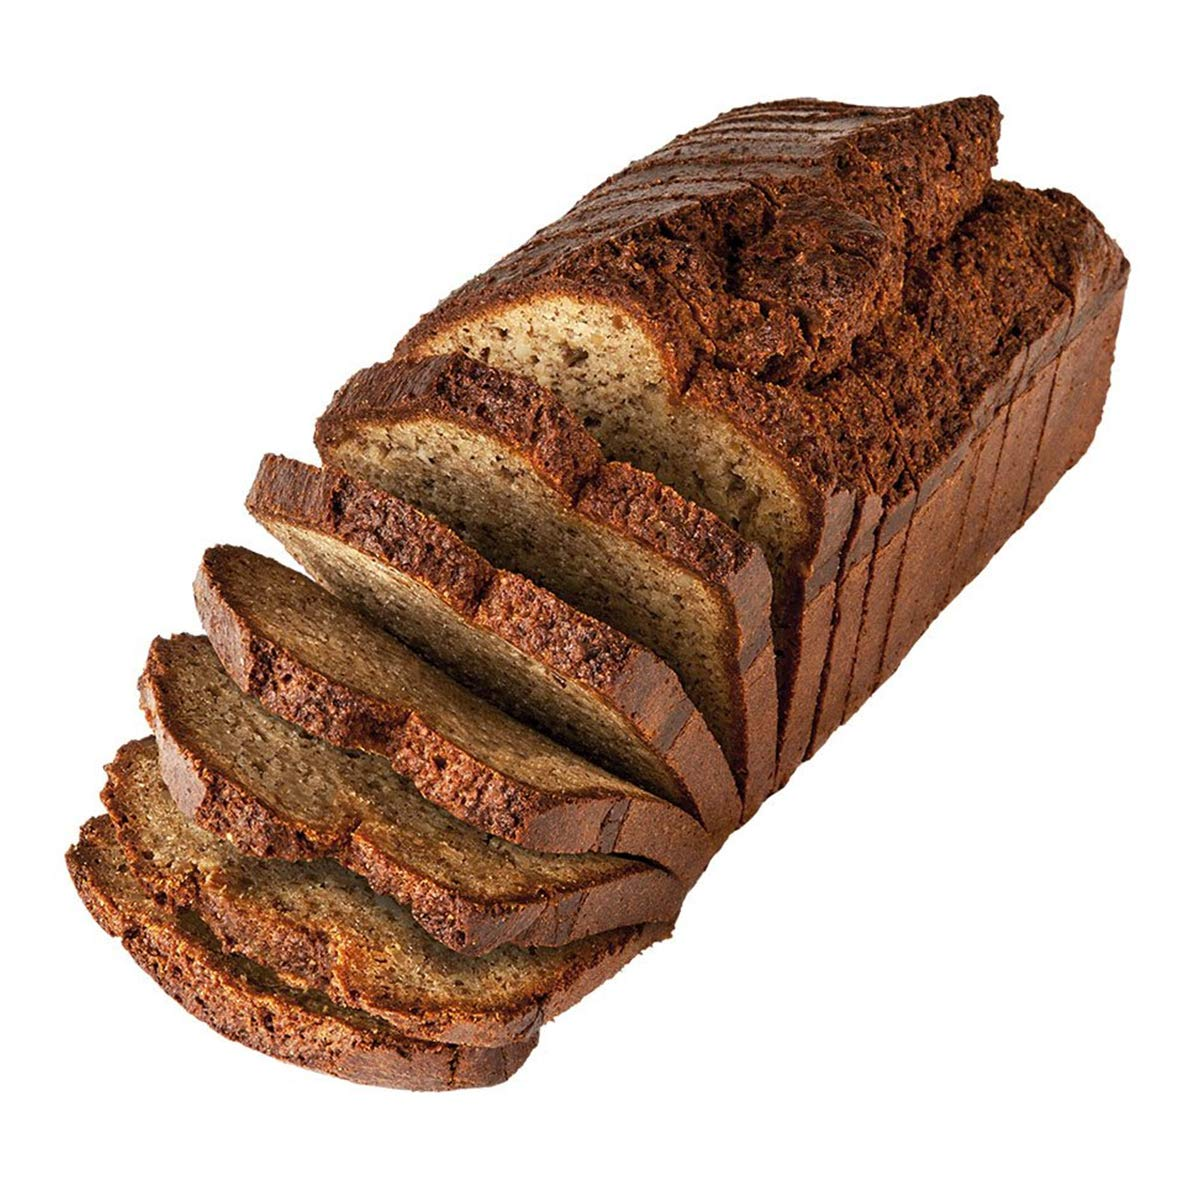 Base Culture Paleo Bread, Large Size   Delicious 100% Paleo, Gluten, Grain, Dairy, and Soy Free- Perfect for Sandwiches (5g Protein Per Loaf, 18 Slices Per Loaf, 1 Count) by Base Culture (Image #2)